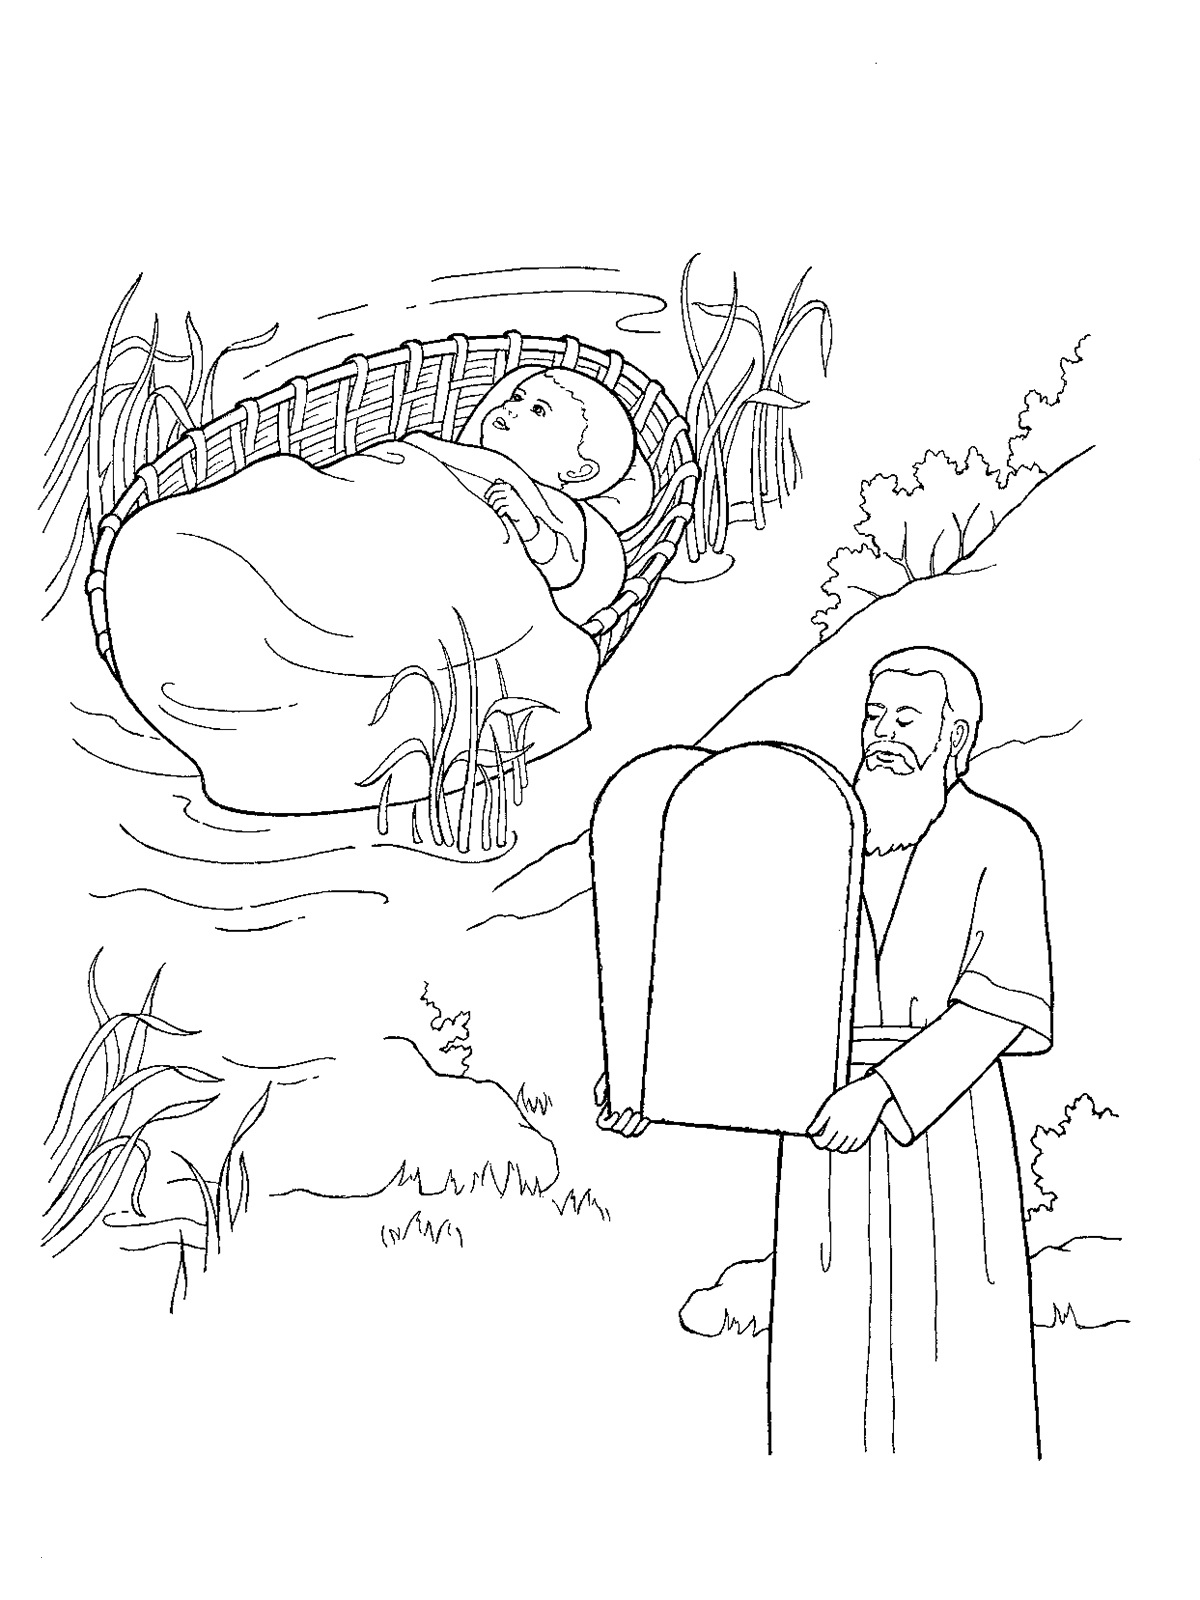 10 commandments coloring pages Collection-Moses 10 mandments Coloring Page 19-t